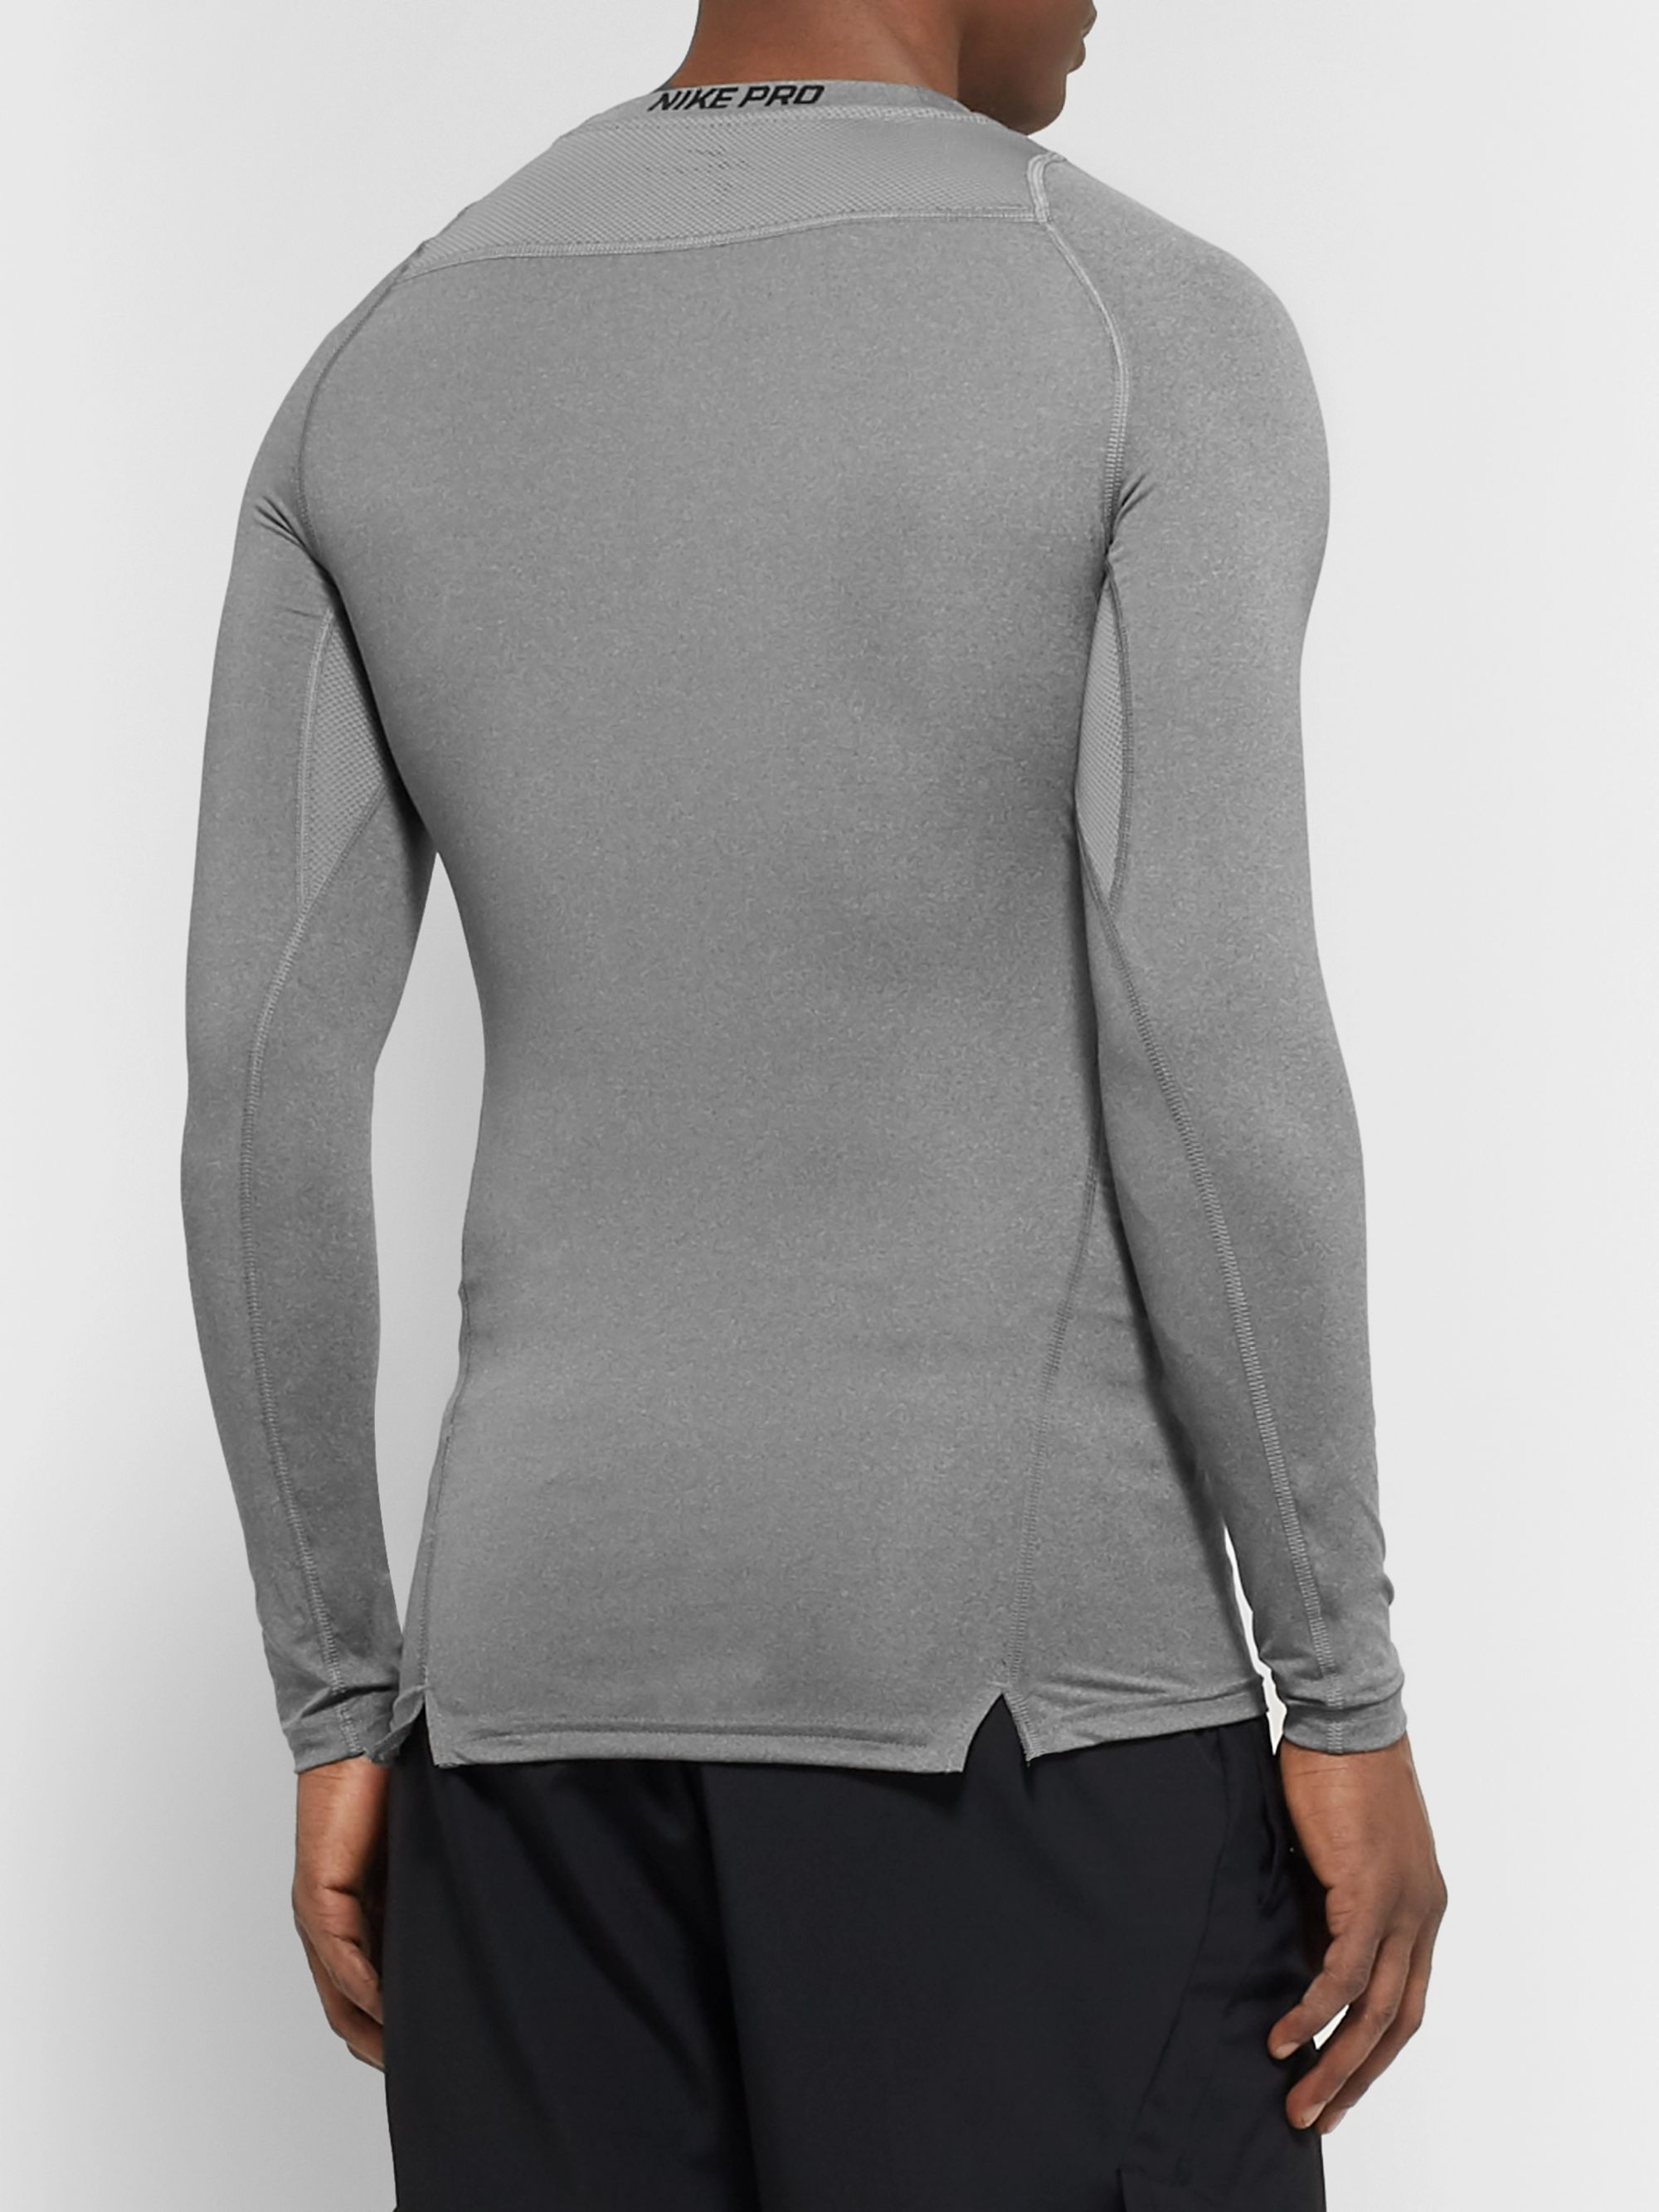 Nike Training Pro Mesh-Panelled Dri-FIT Compression Top